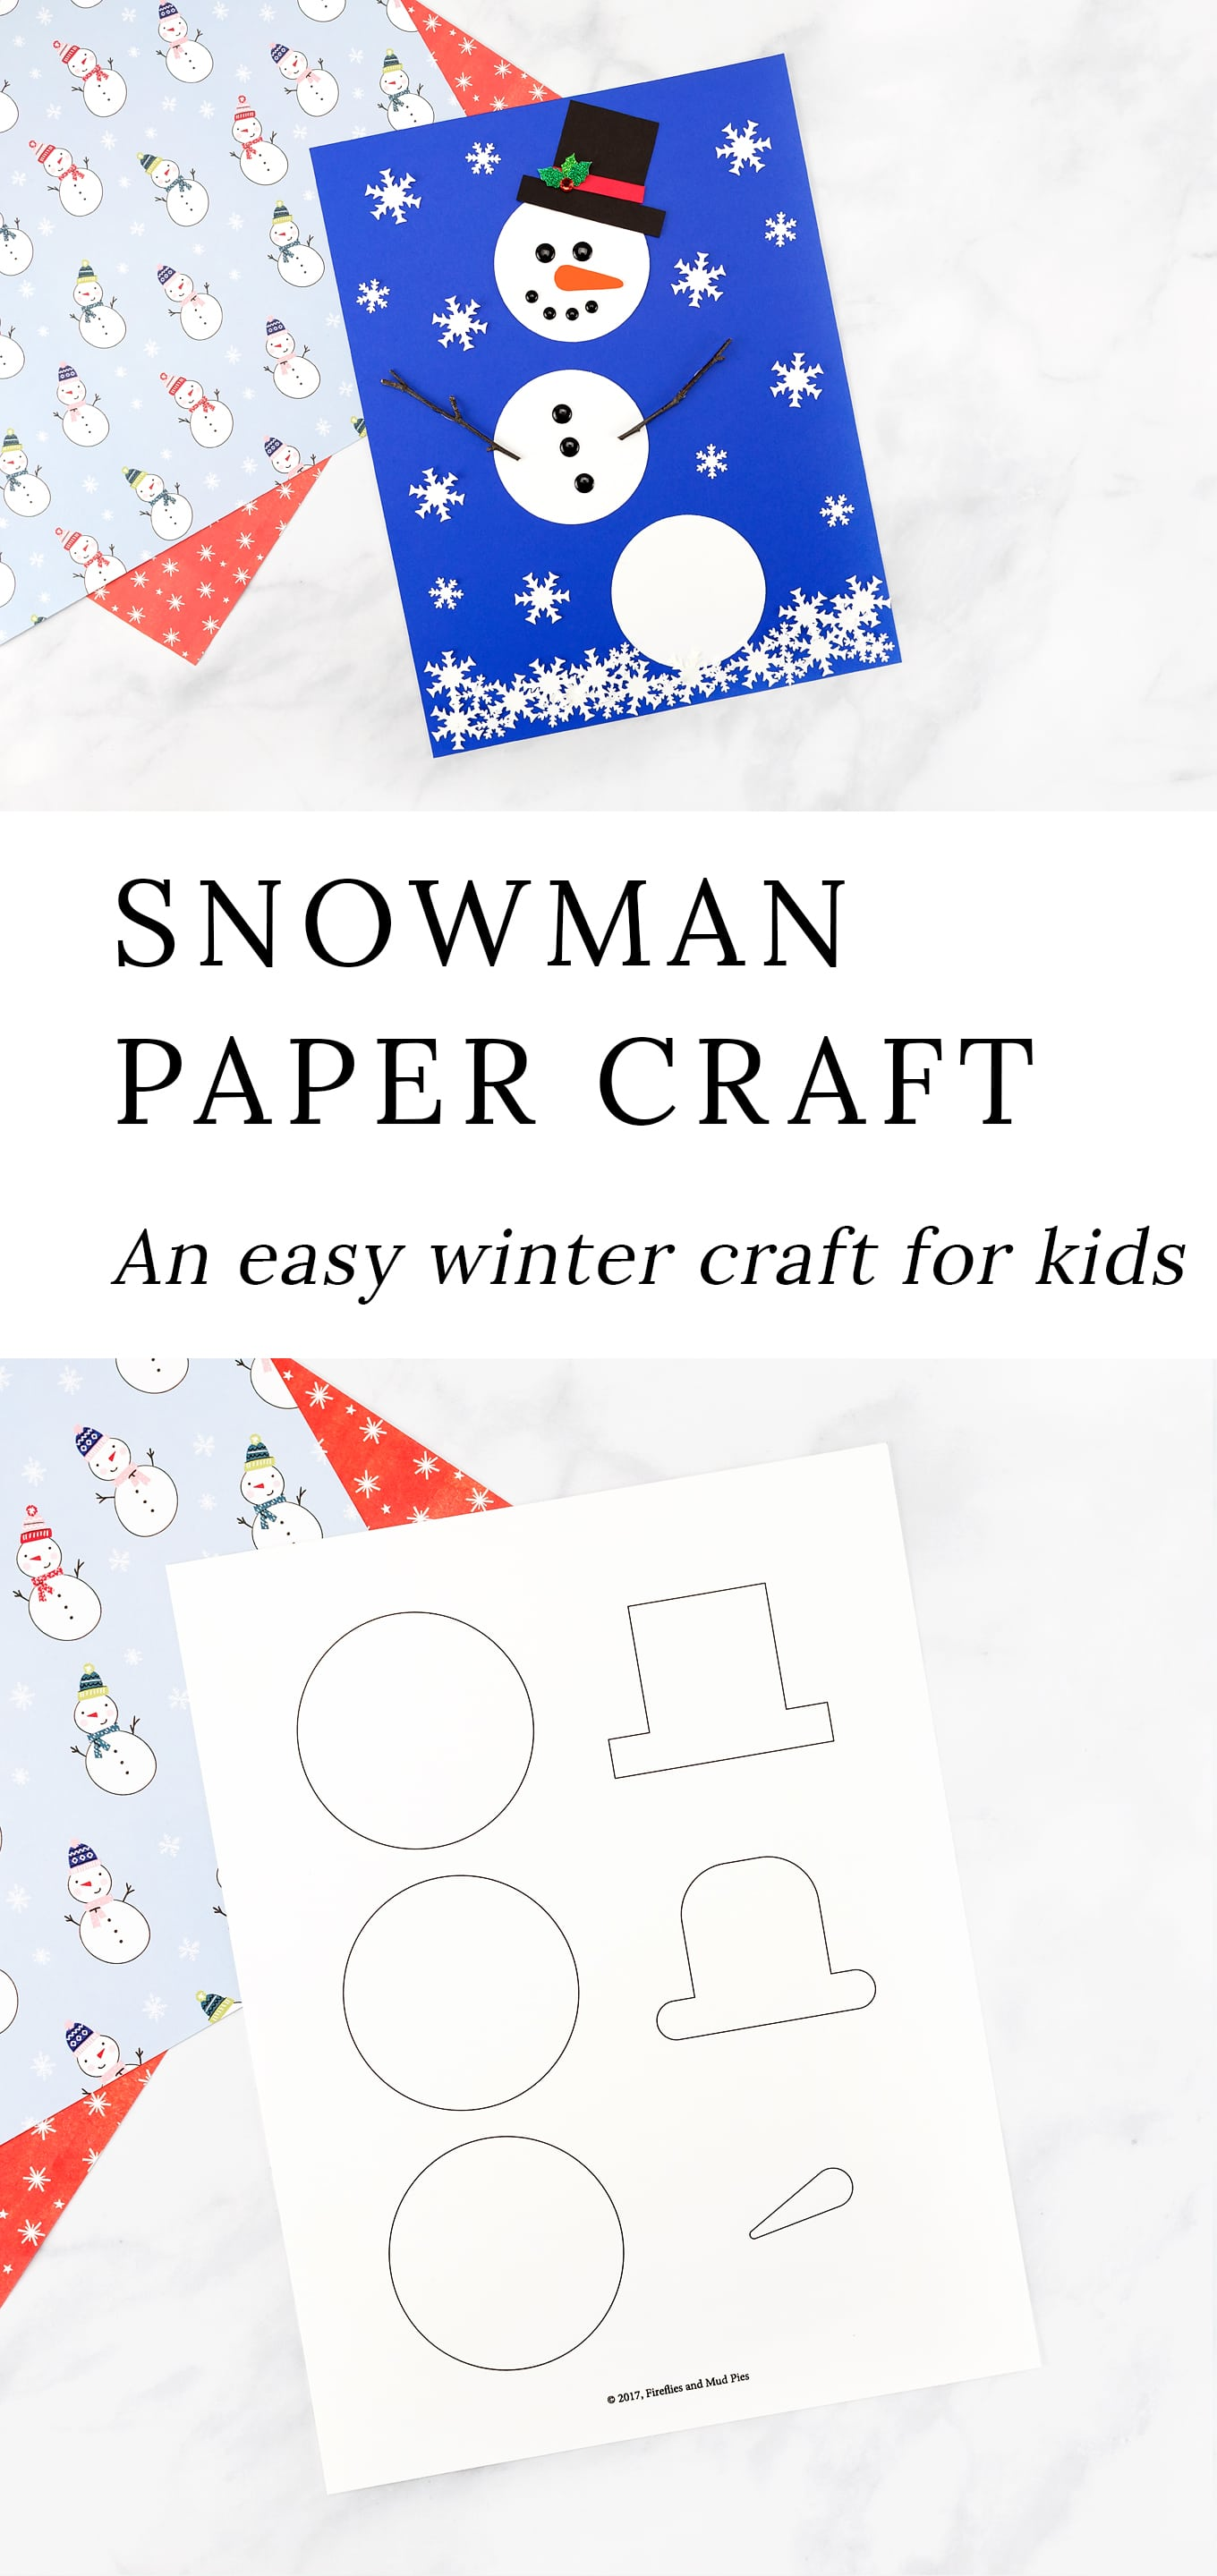 Kids of all ages will enjoy using our printable snowman pattern, twigs, felt, and a snowflake paper punch to create a simple and fun paper snowman craft. It's perfect for school or home! #wintercraft #kidscraft #snowman #preschool via @firefliesandmudpies